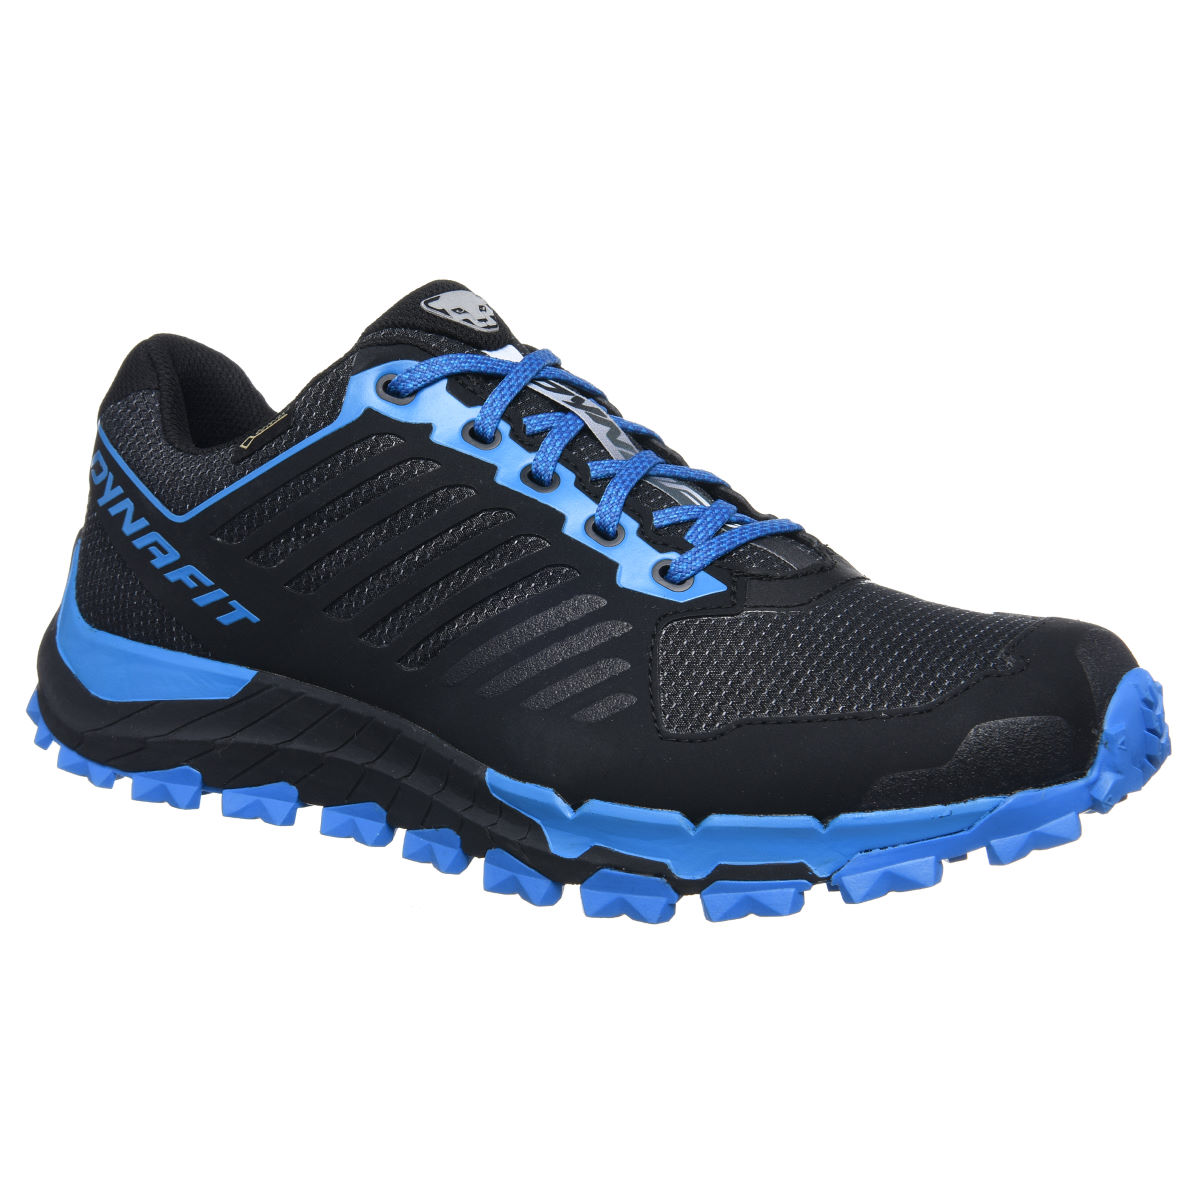 Chaussures Dynafit Trailbreaker GTX - UK 10 Black/Sparta Blue